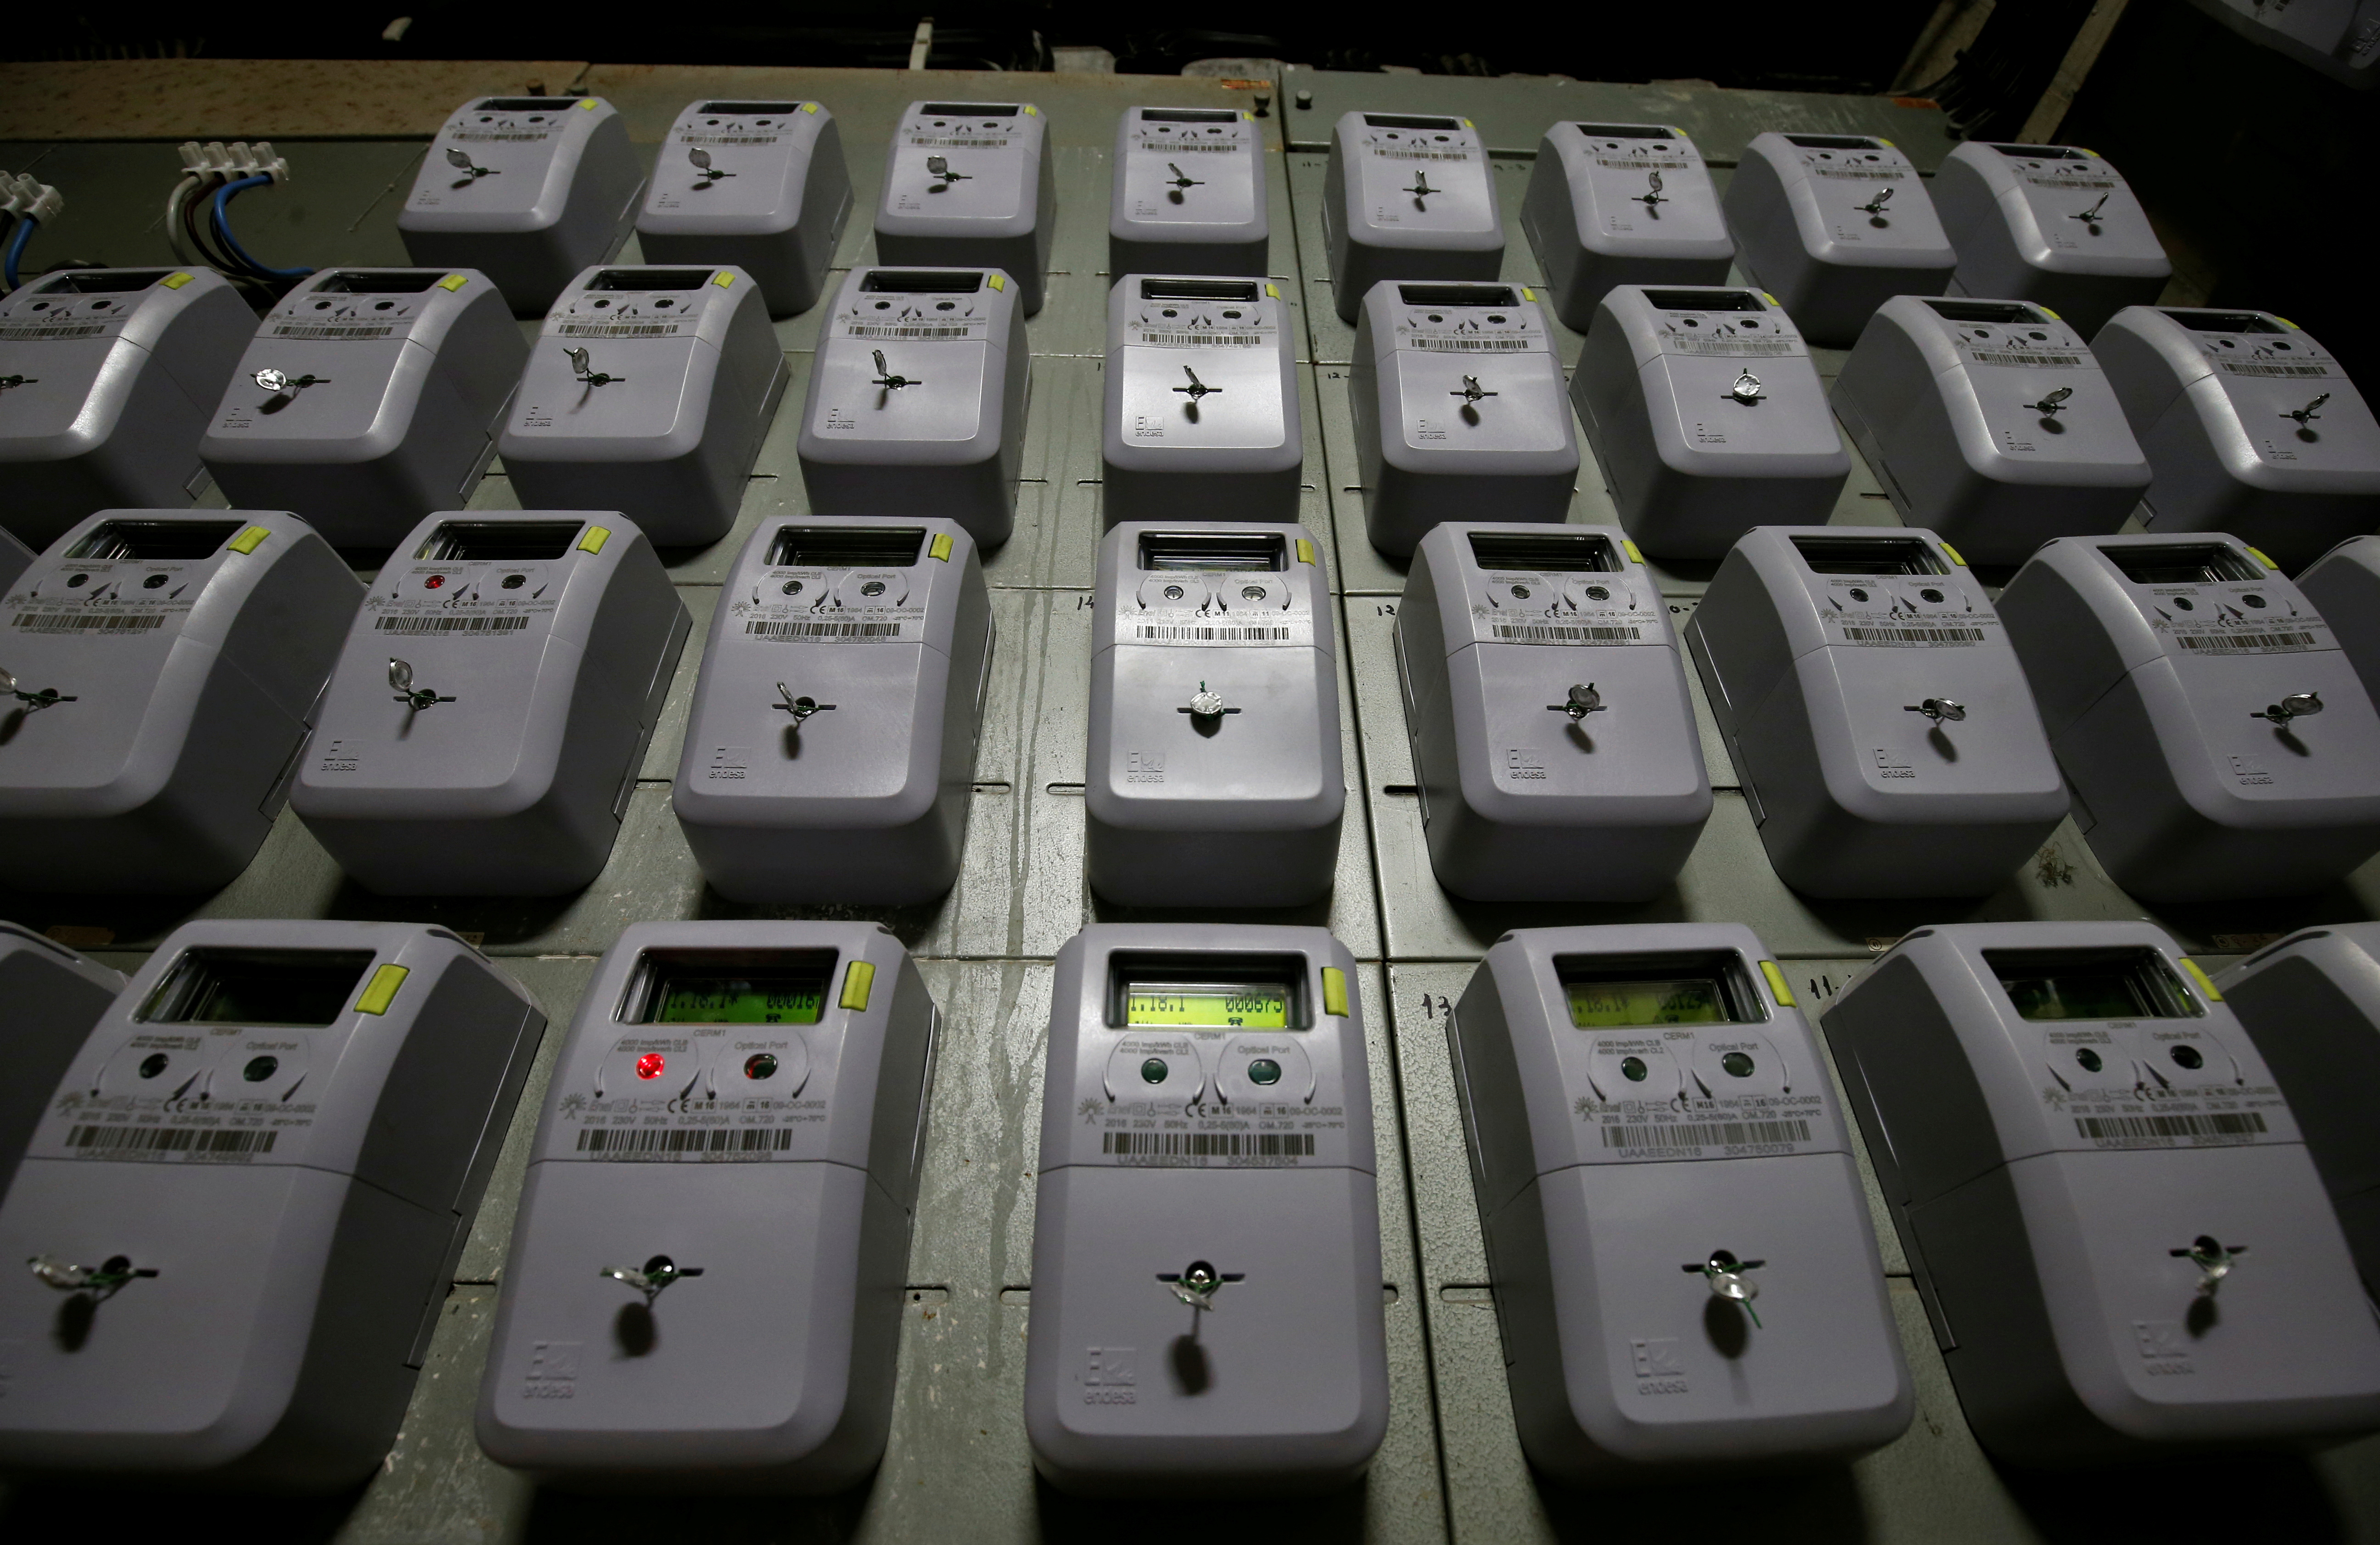 Electric meters of an apartment building are seen in Barcelona, Spain January 20, 2017. REUTERS/Albert Gea